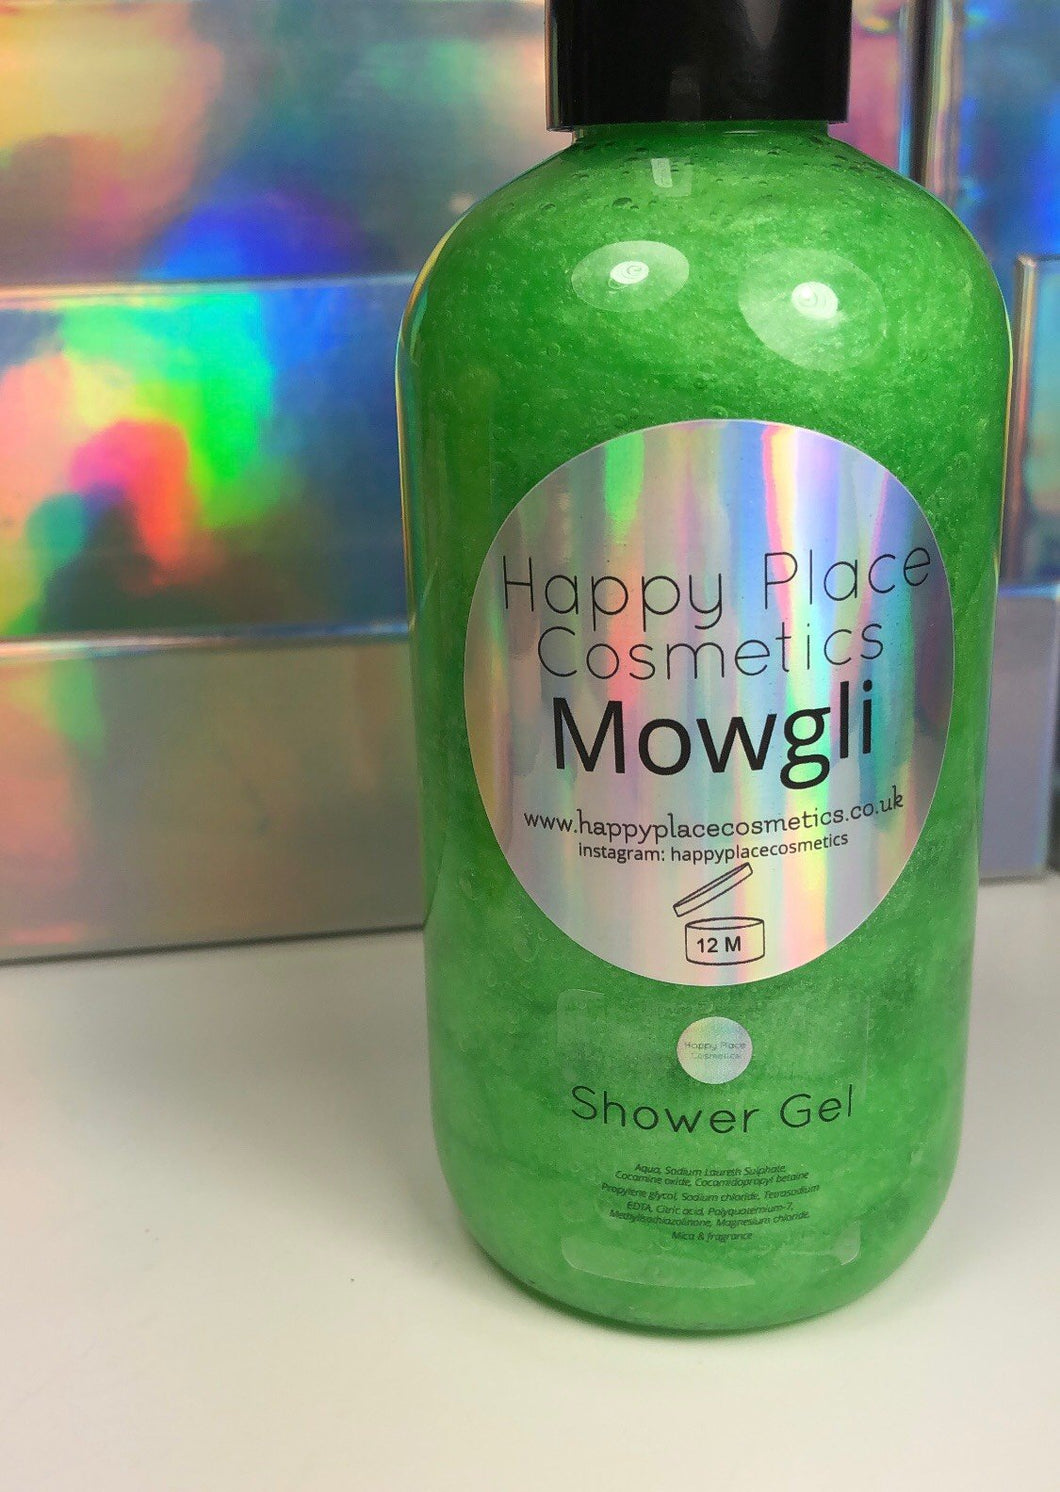 Mowgli Shower Gel